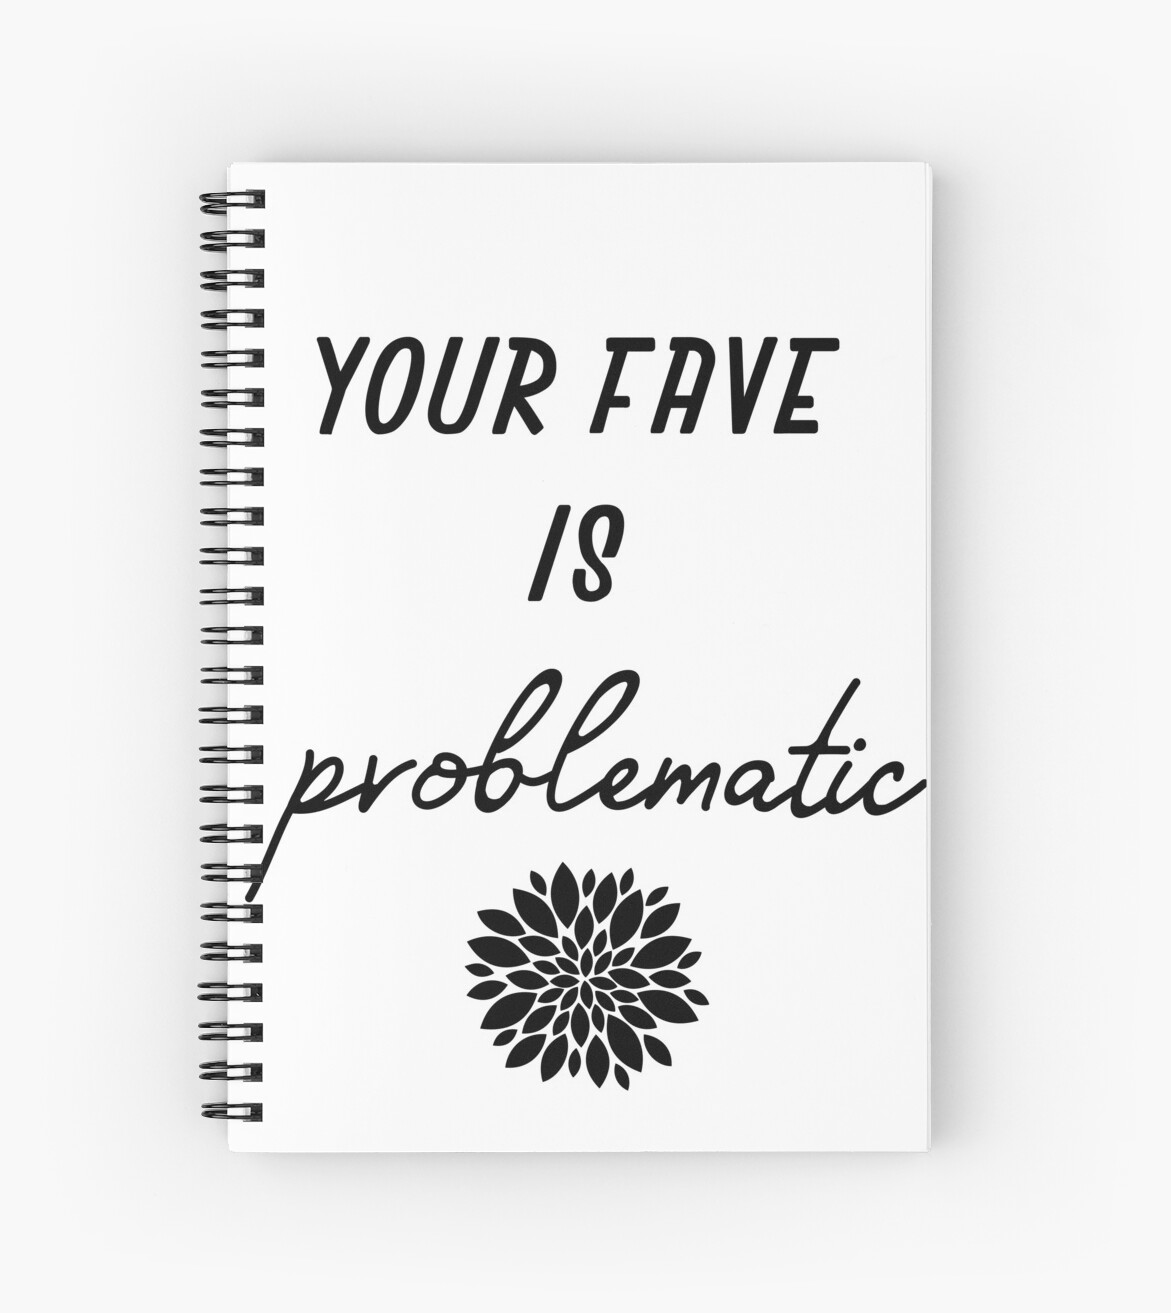 your fave is problematic by extortion-com